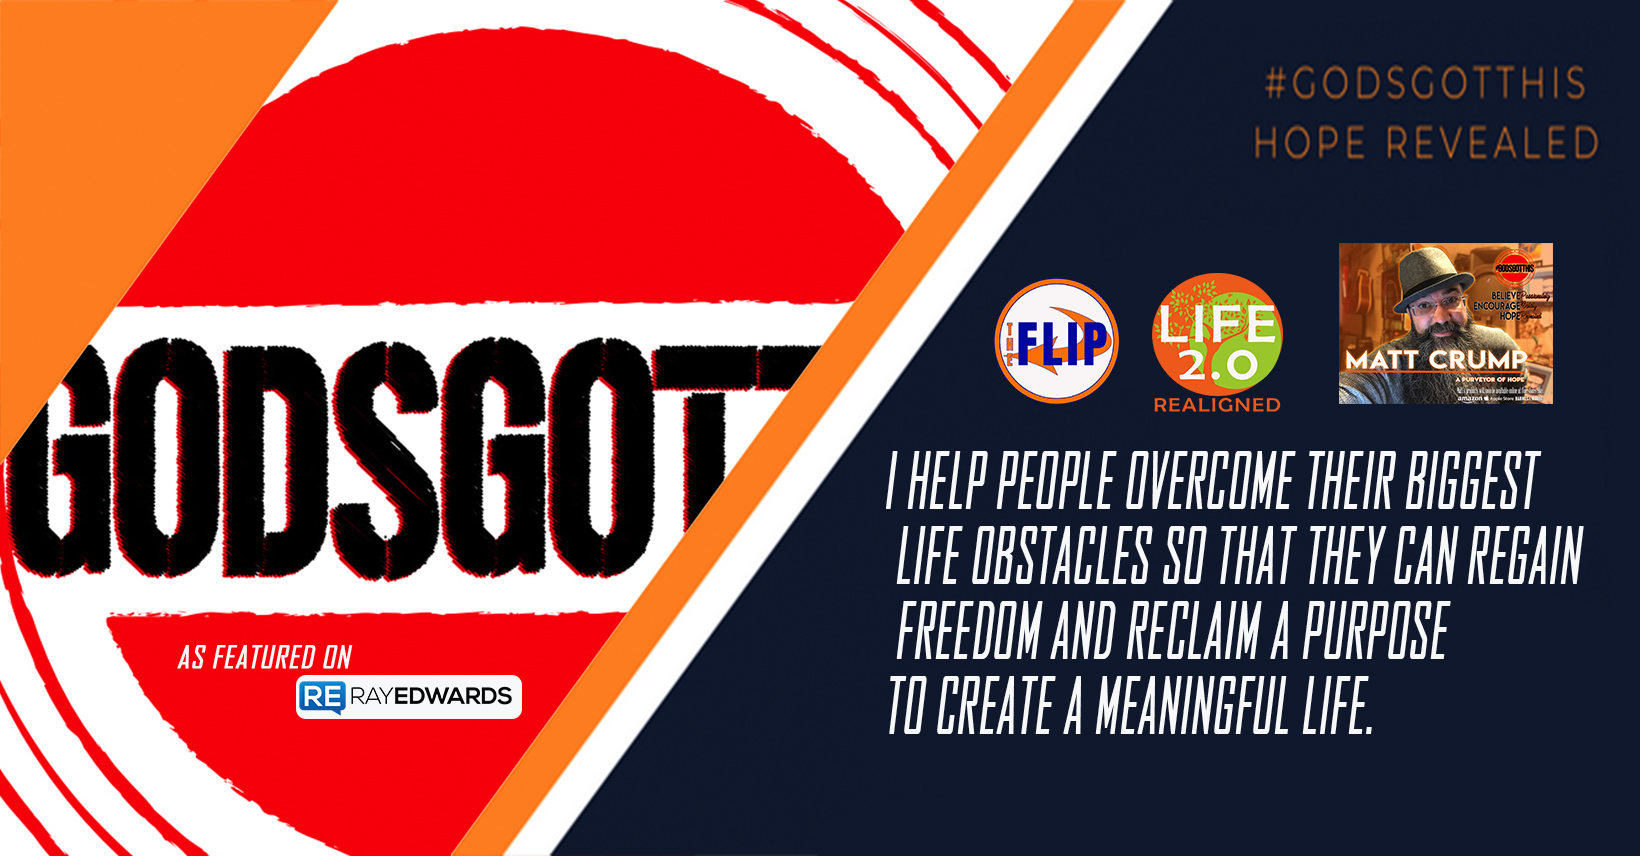 #GGT FB Group Cover.jpg